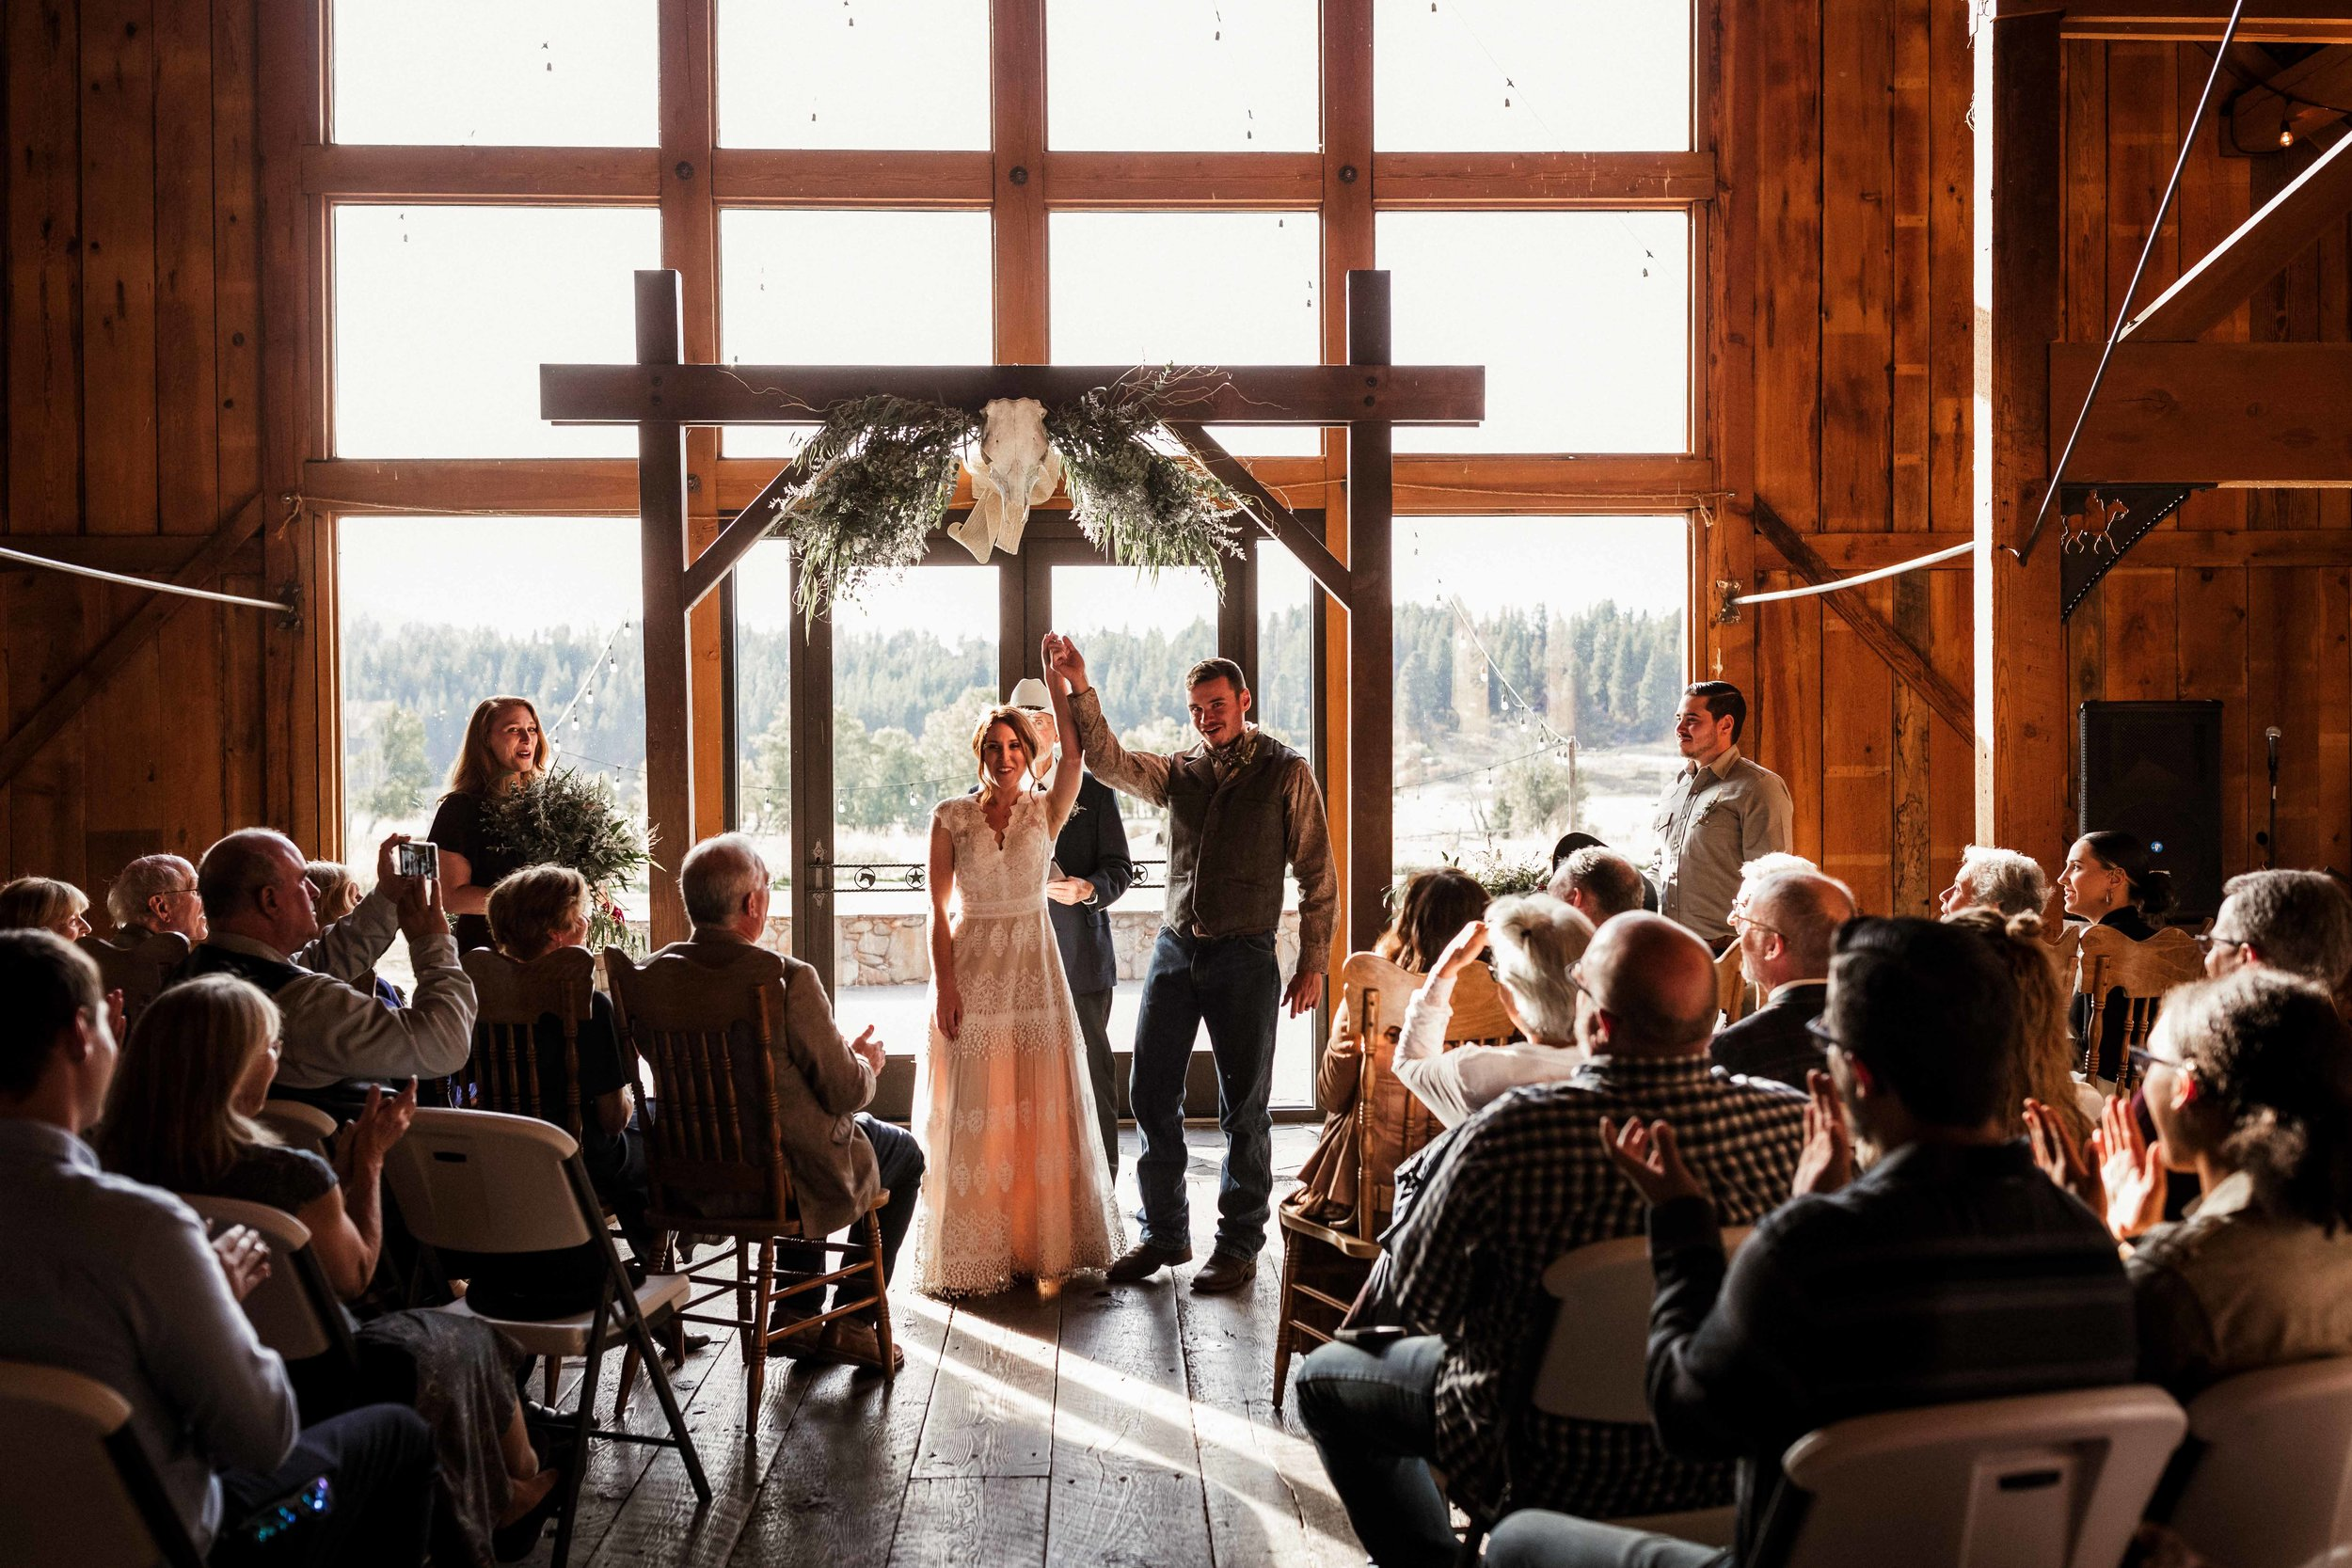 the-cattle-barn-wedding-44.jpg